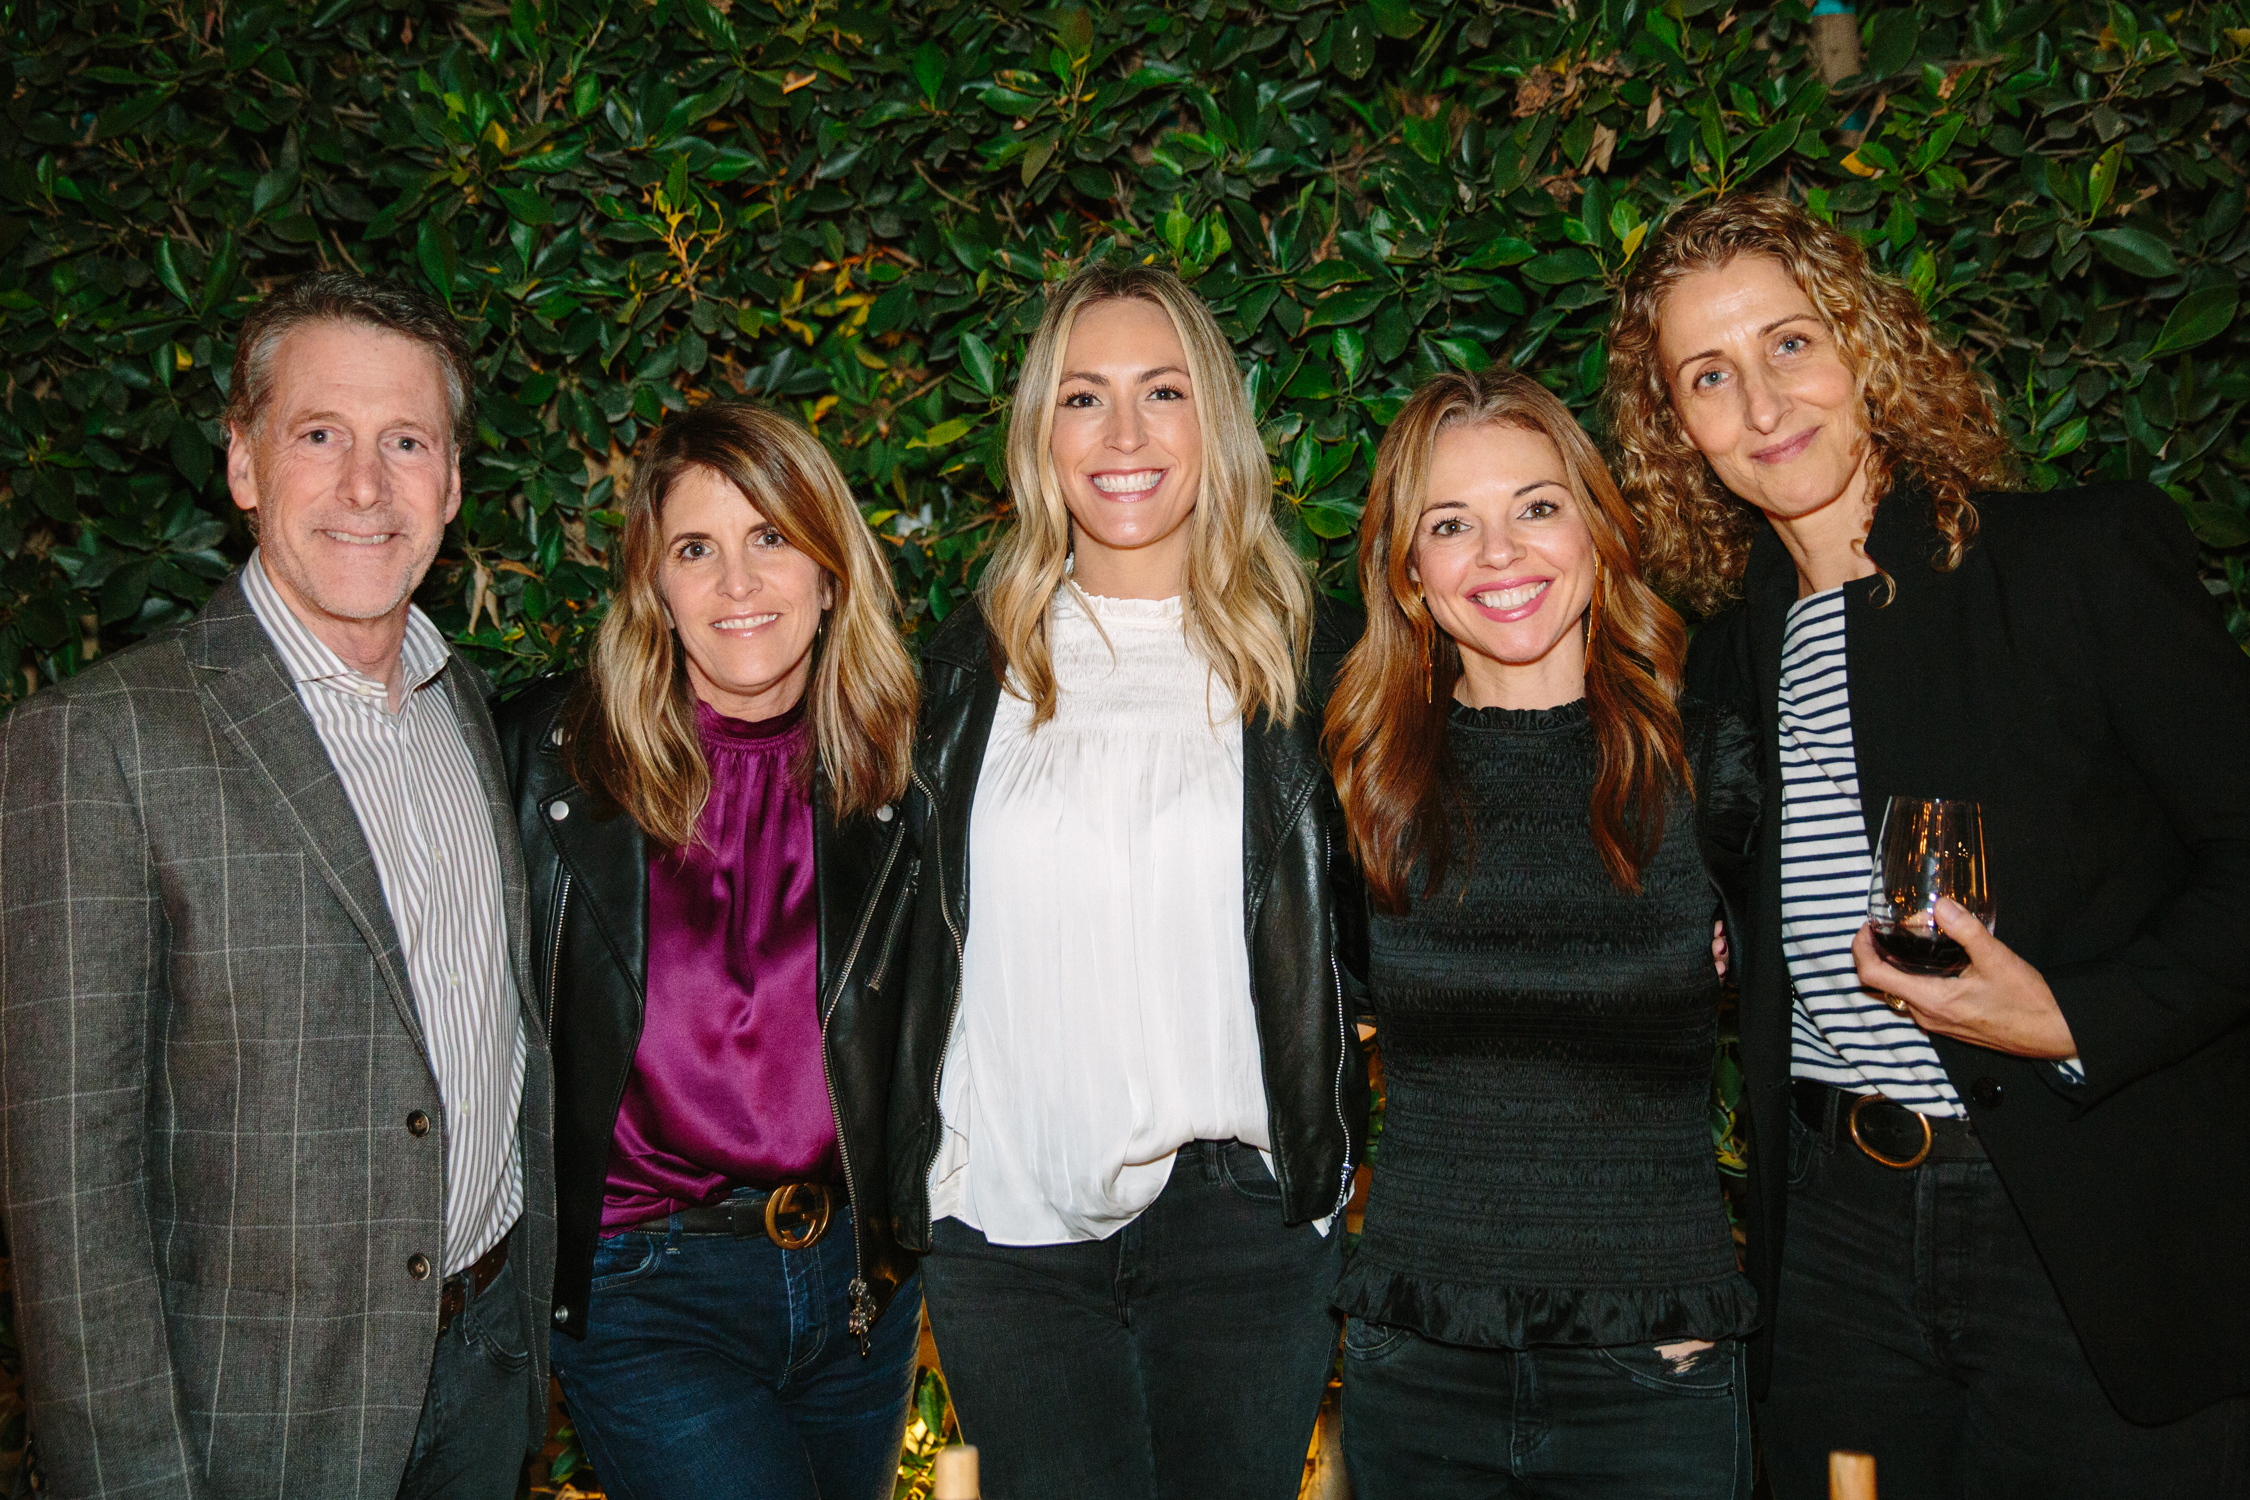 Russ Diamond, Andrea Stanford, design partners Brittany Zwickl and Shannon Wollack of Studio Life/Style, and Dana Joy Altman